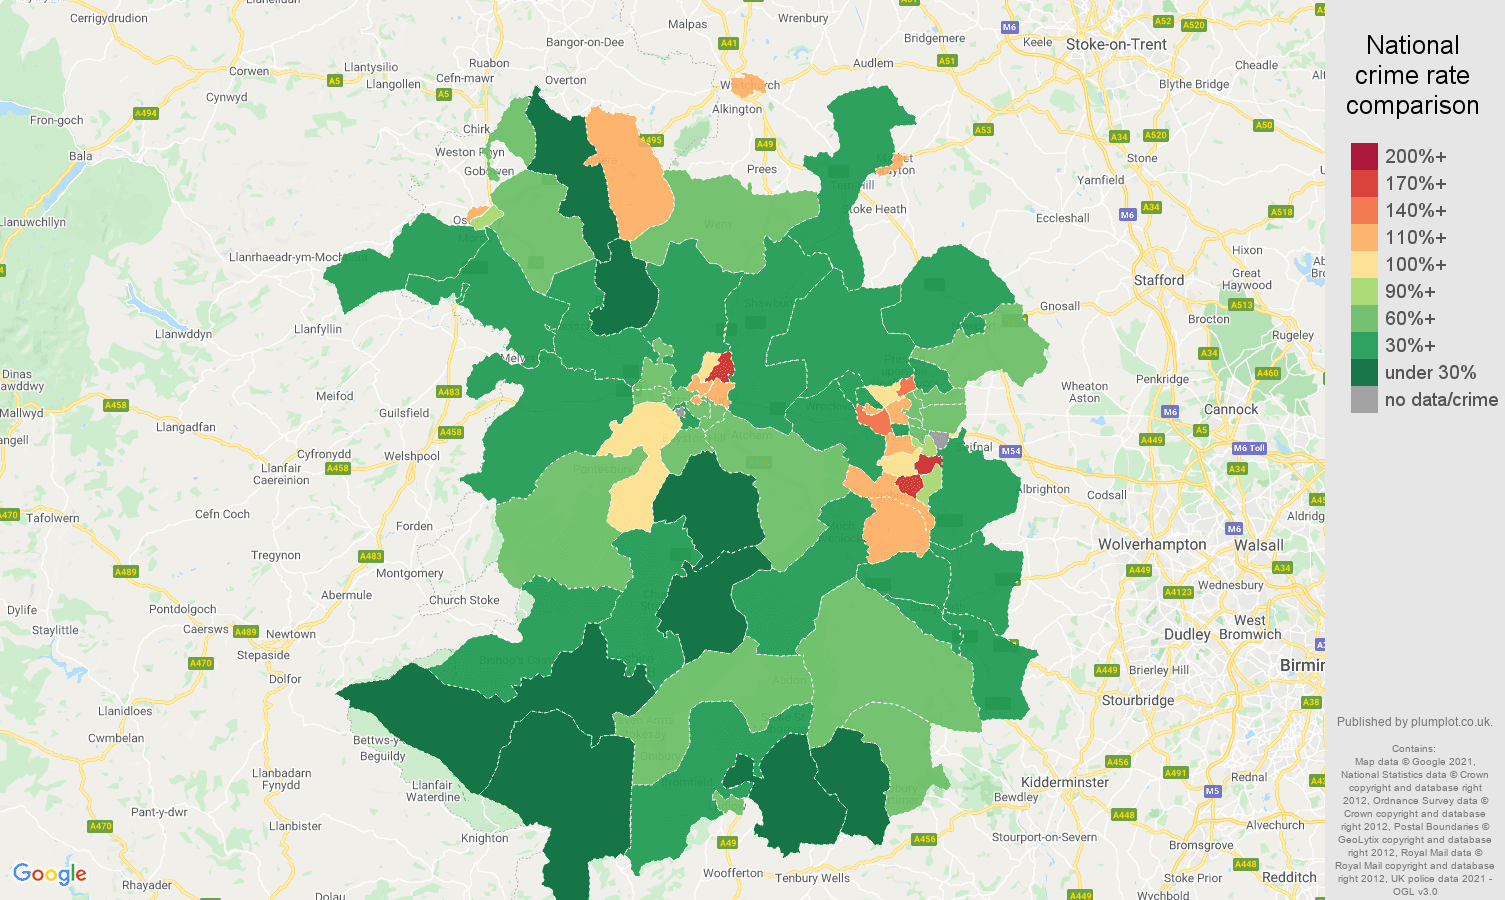 Shropshire criminal damage and arson crime rate comparison map